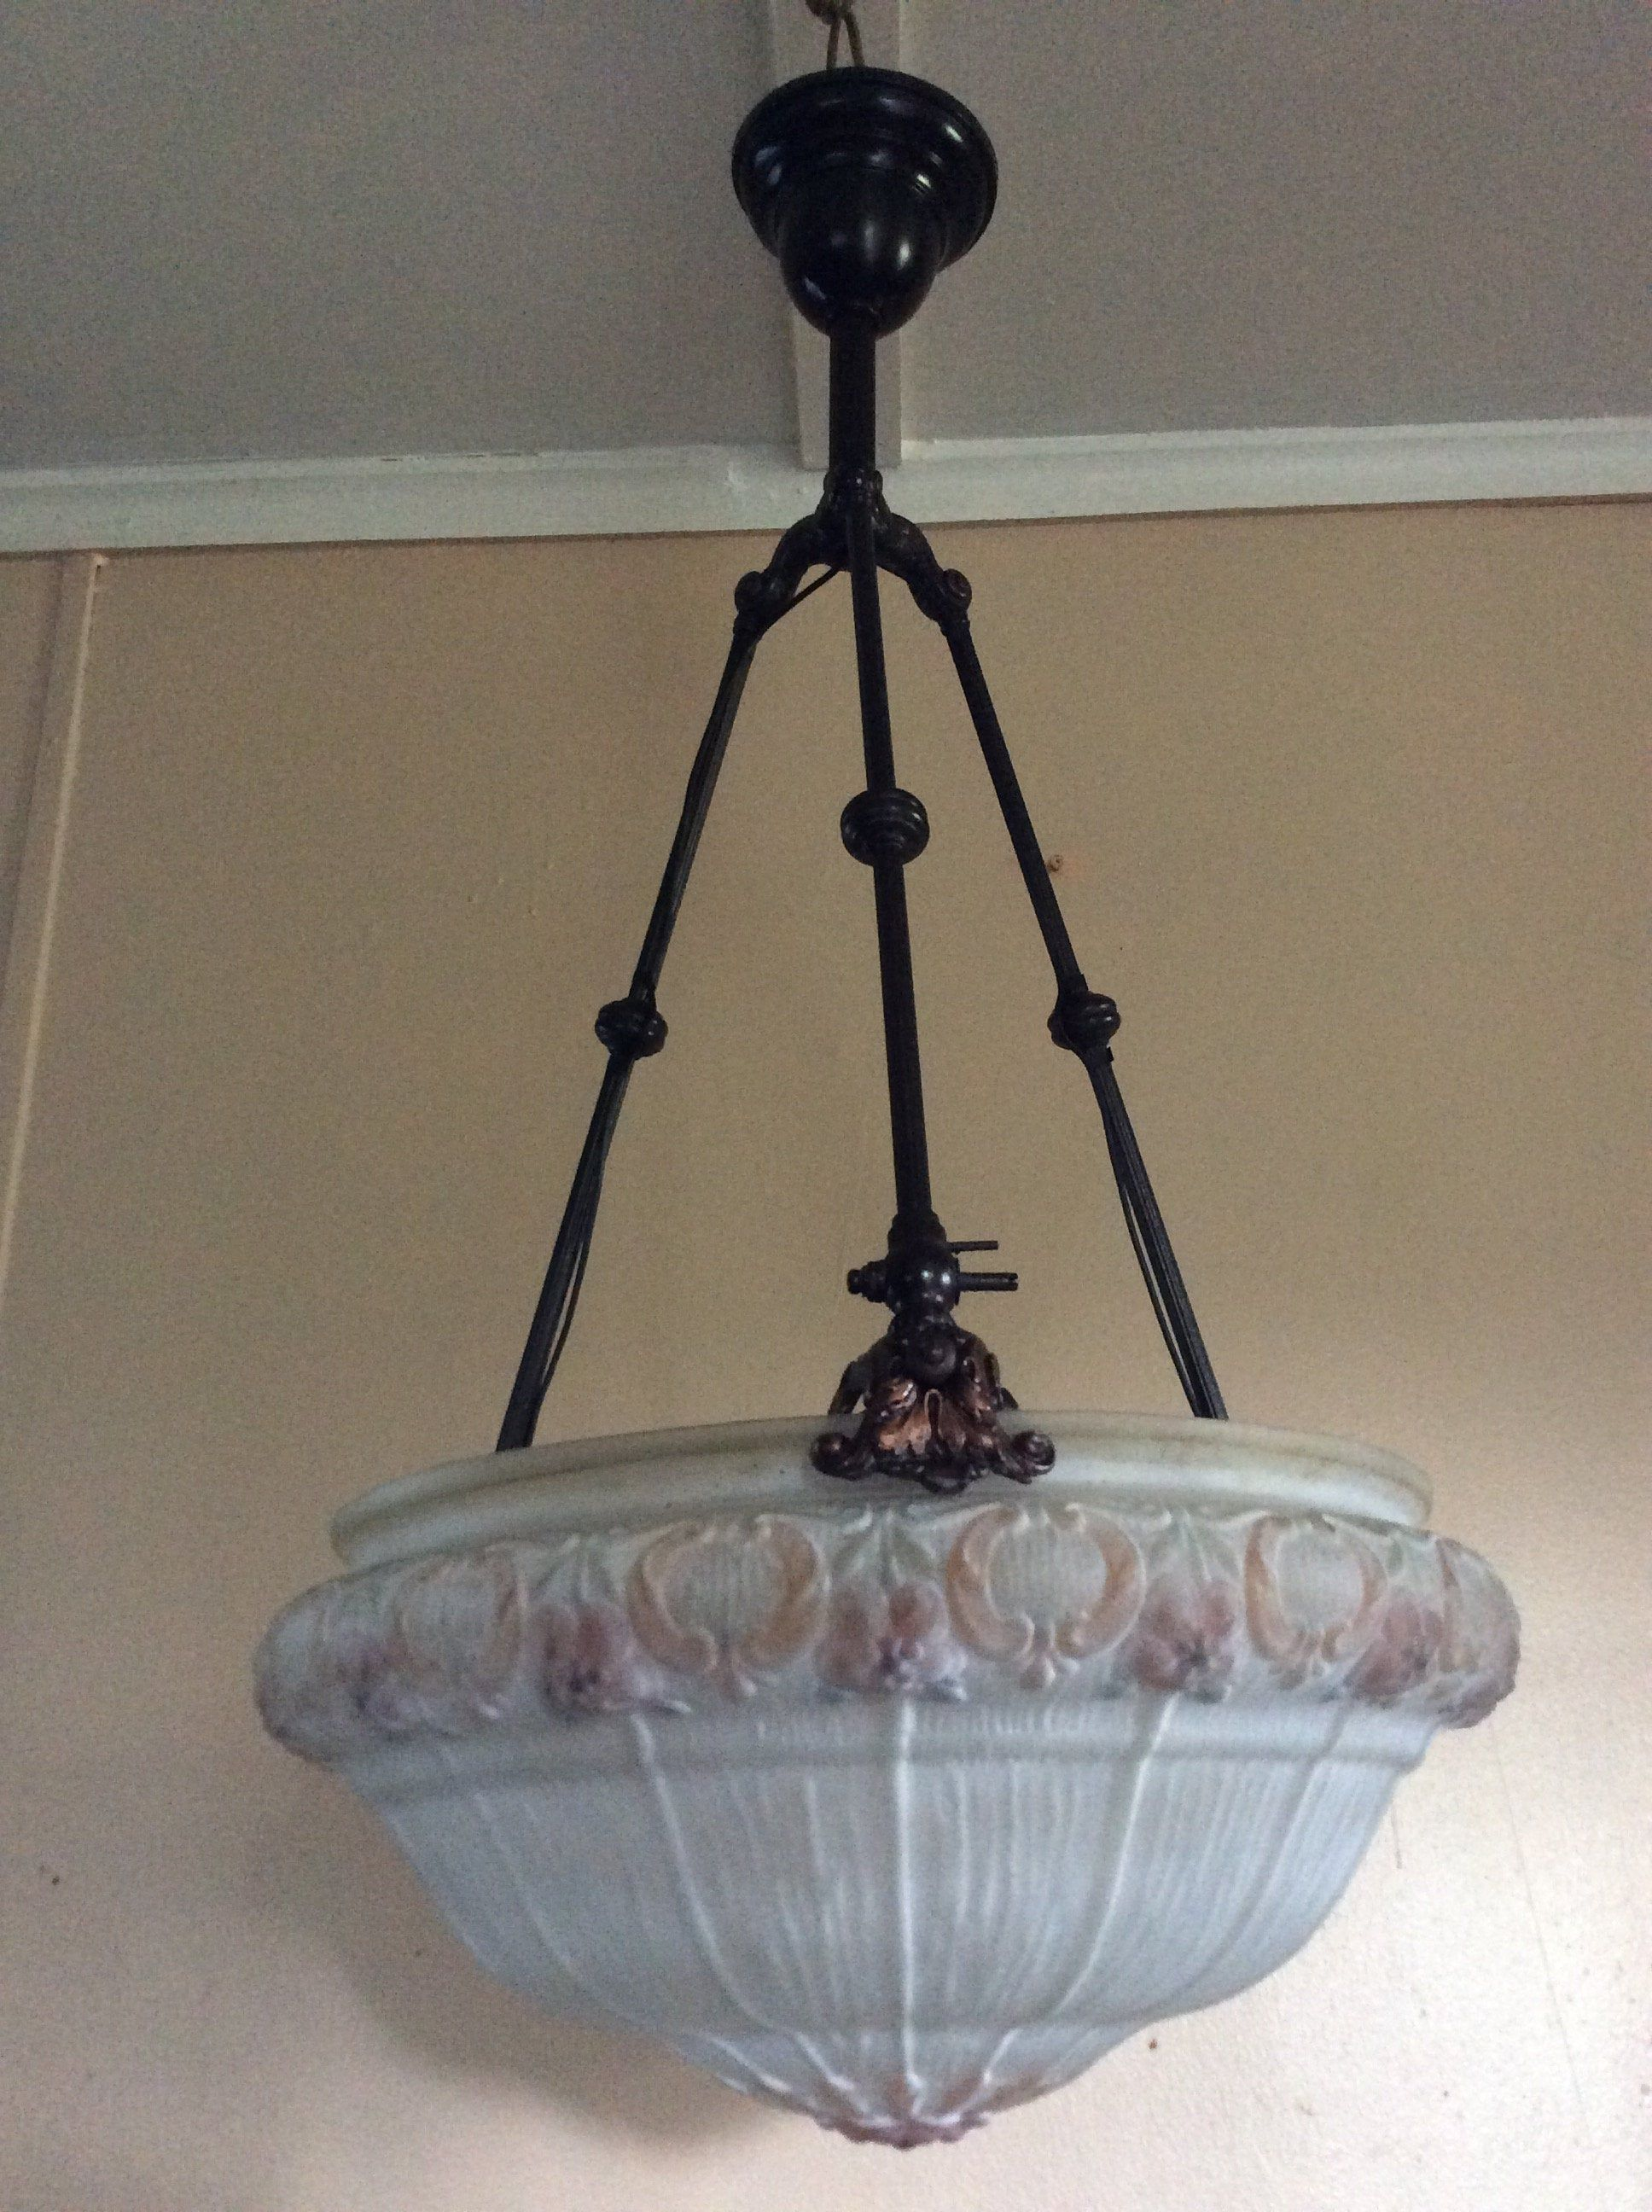 Antique Victorian Chandelier Hanging Bowl Light Late 1800s Gas Converted To Electricity Bowl Light Victorian Chandelier Old Lights